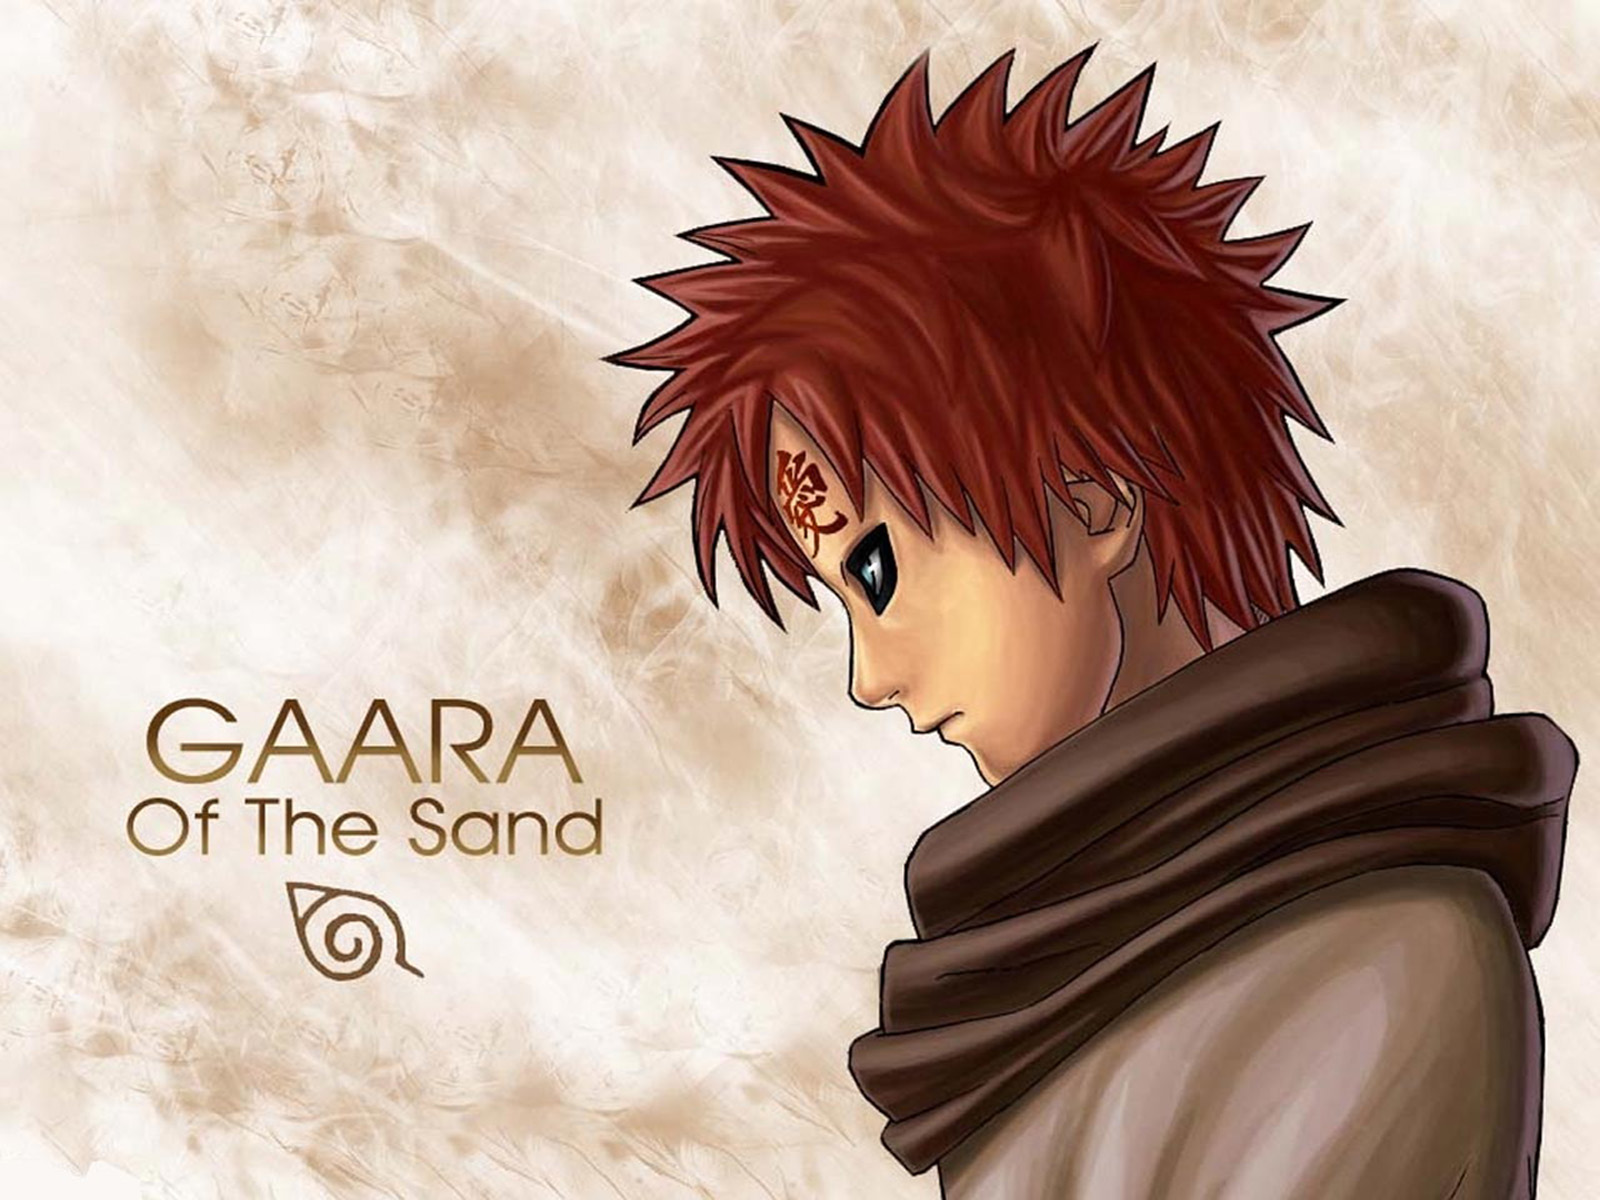 desktopanimewallpapercomimageswallpapersgaara 1600 487863jpeg 1600x1200